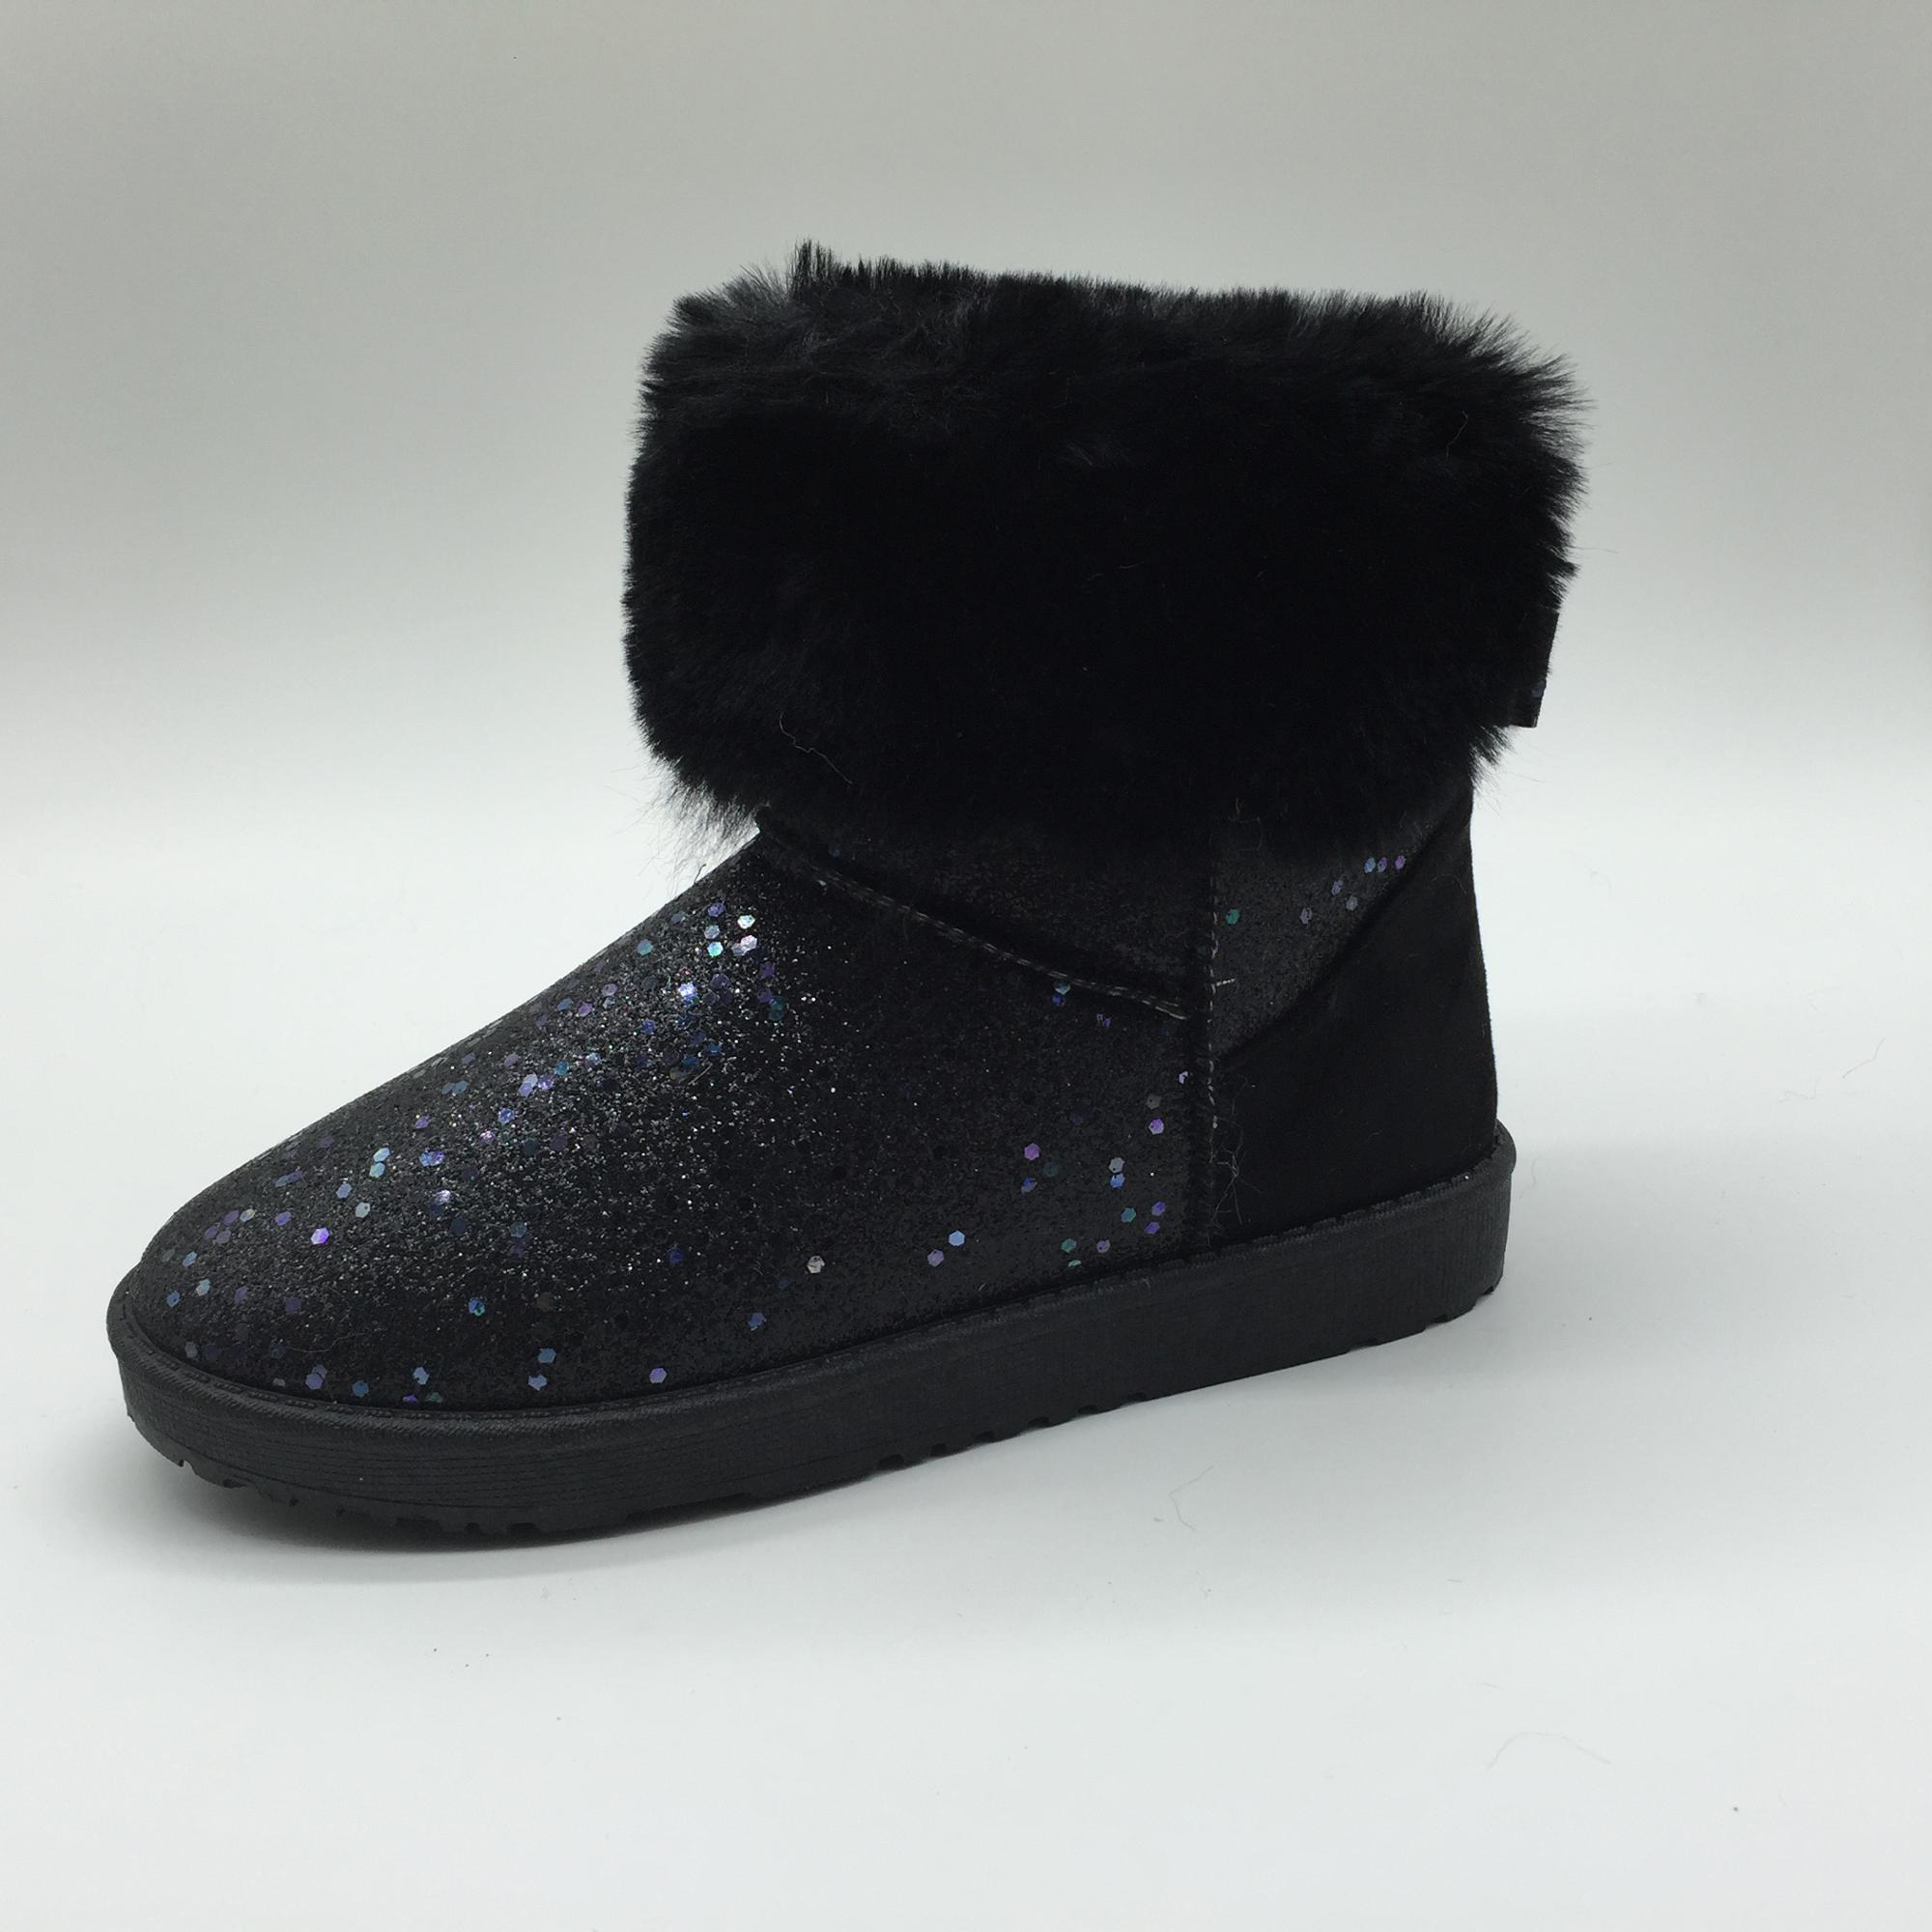 Pretty Elegance Black Glitter Pu Shoes Boots for Girls